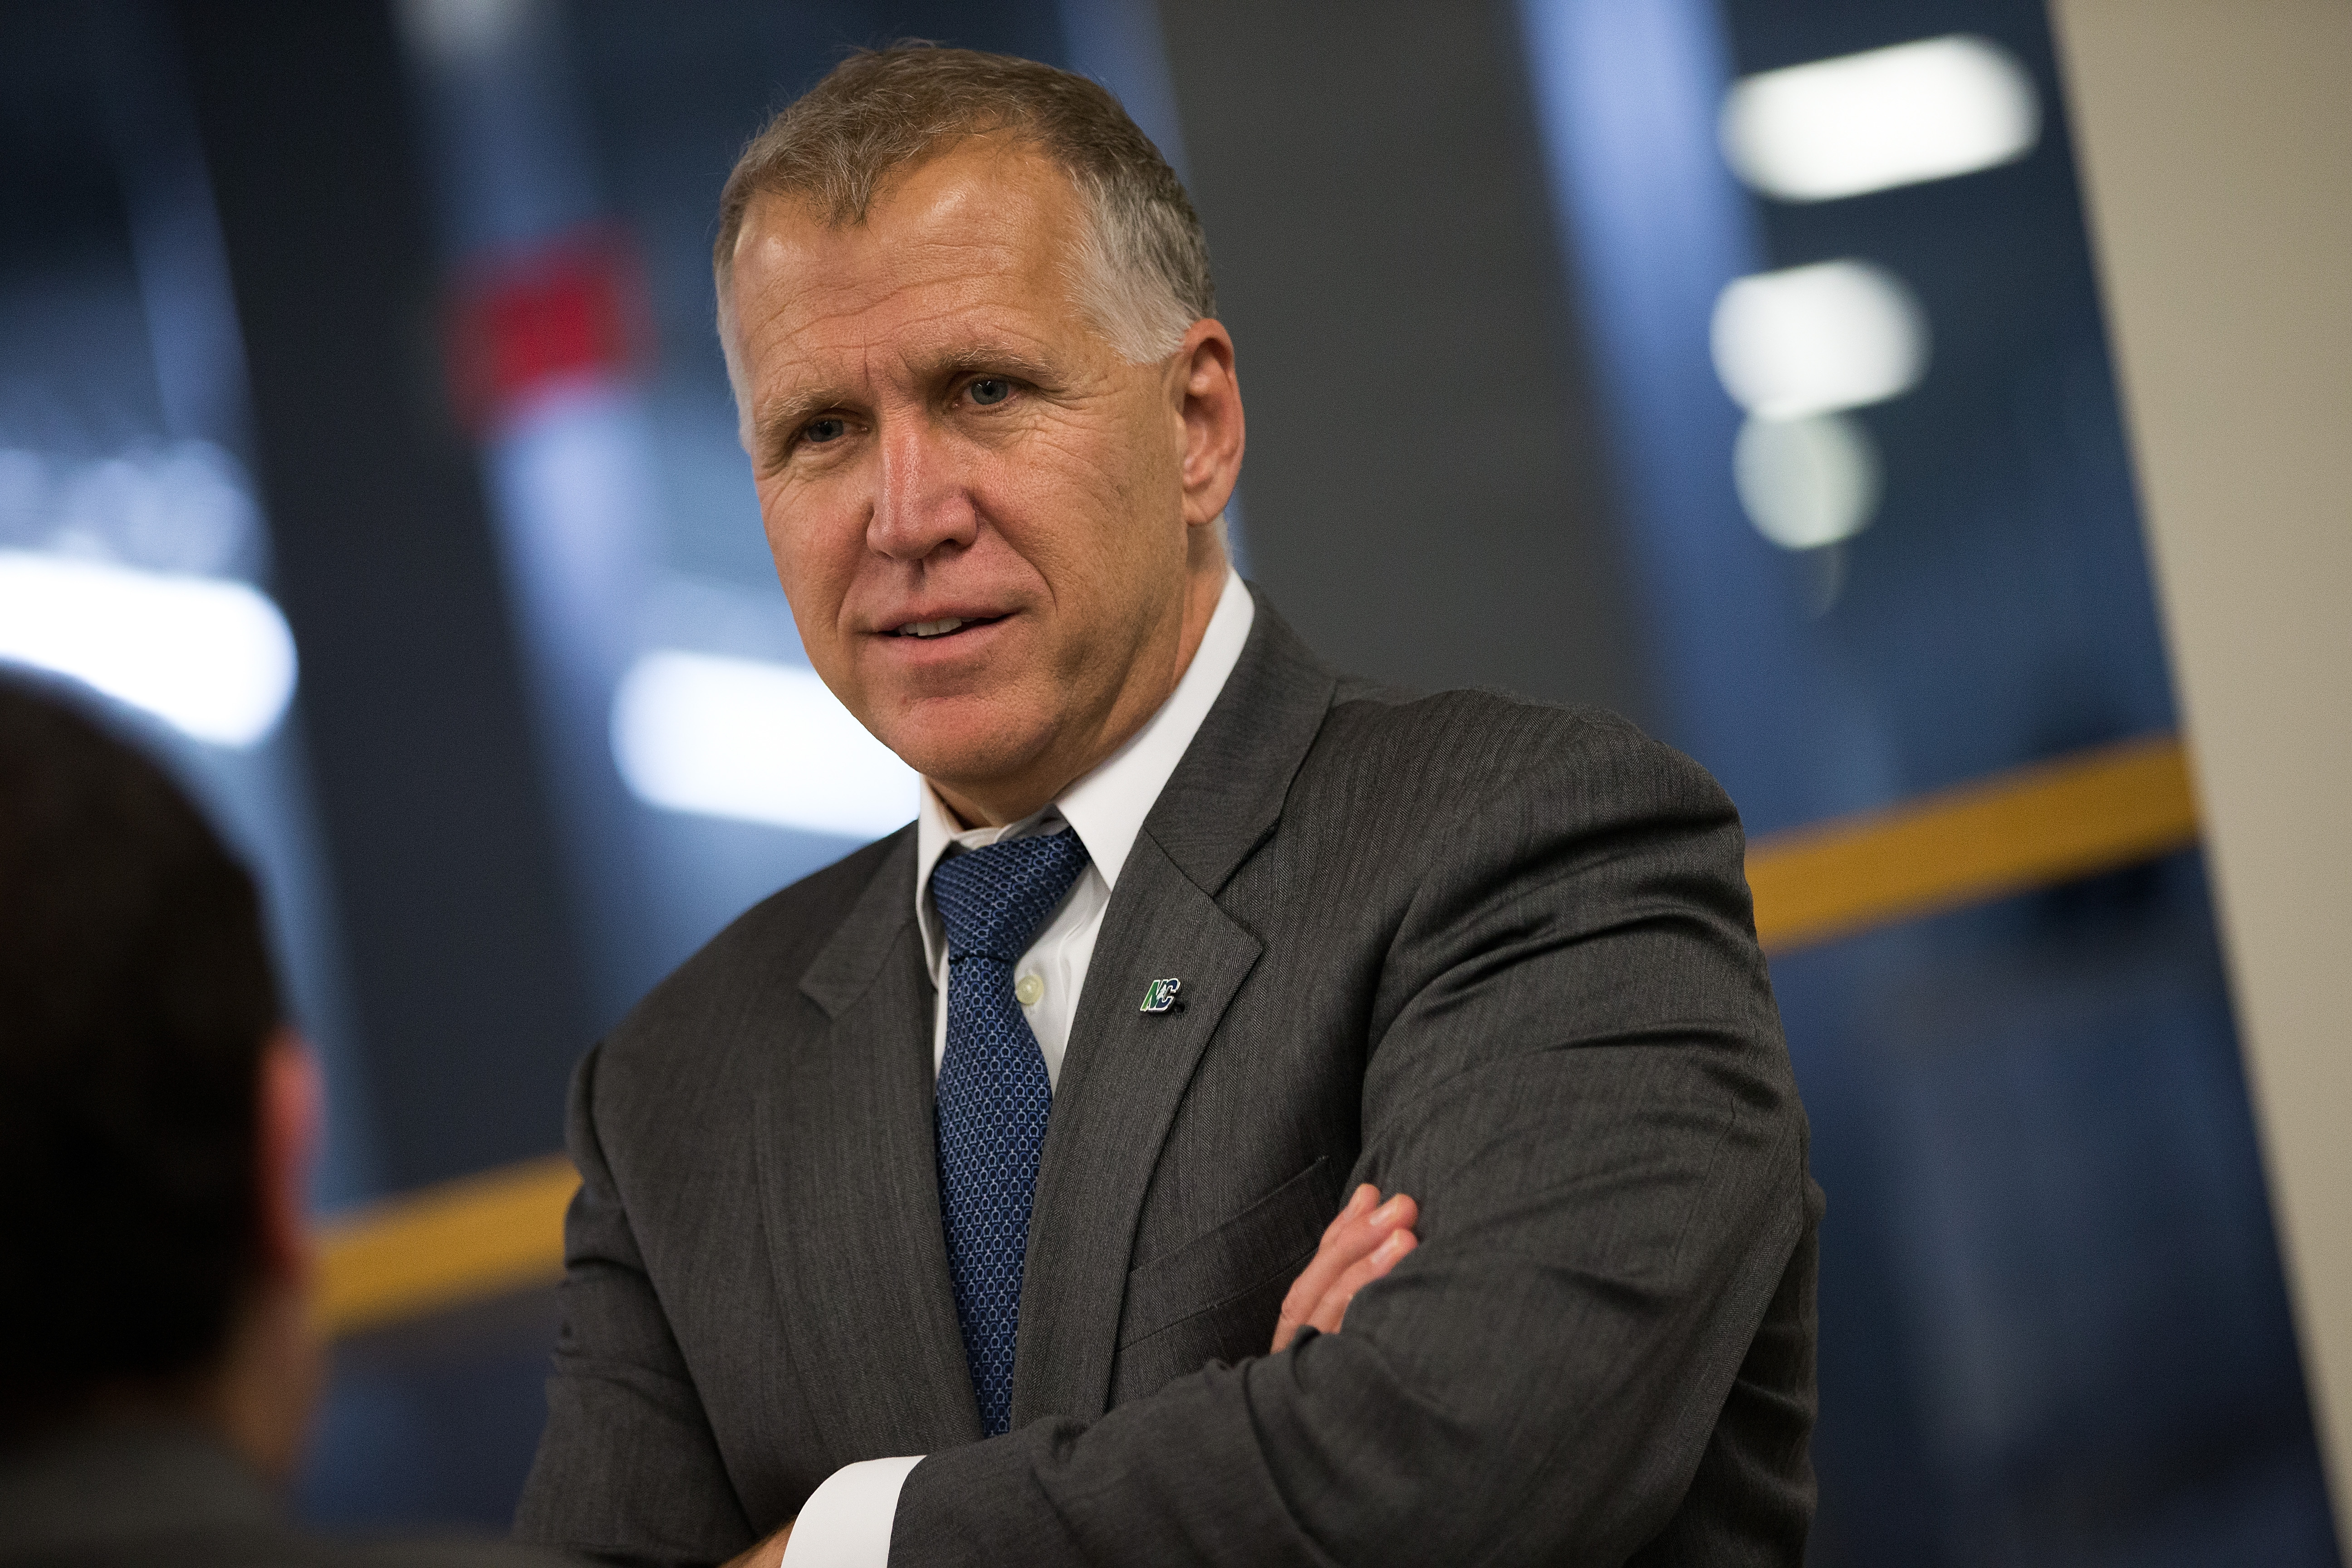 Sen. Thom Tillis speaks with an aide after a vote at the U.S. Capitol in Washington, D.C., on May 9, 2016.